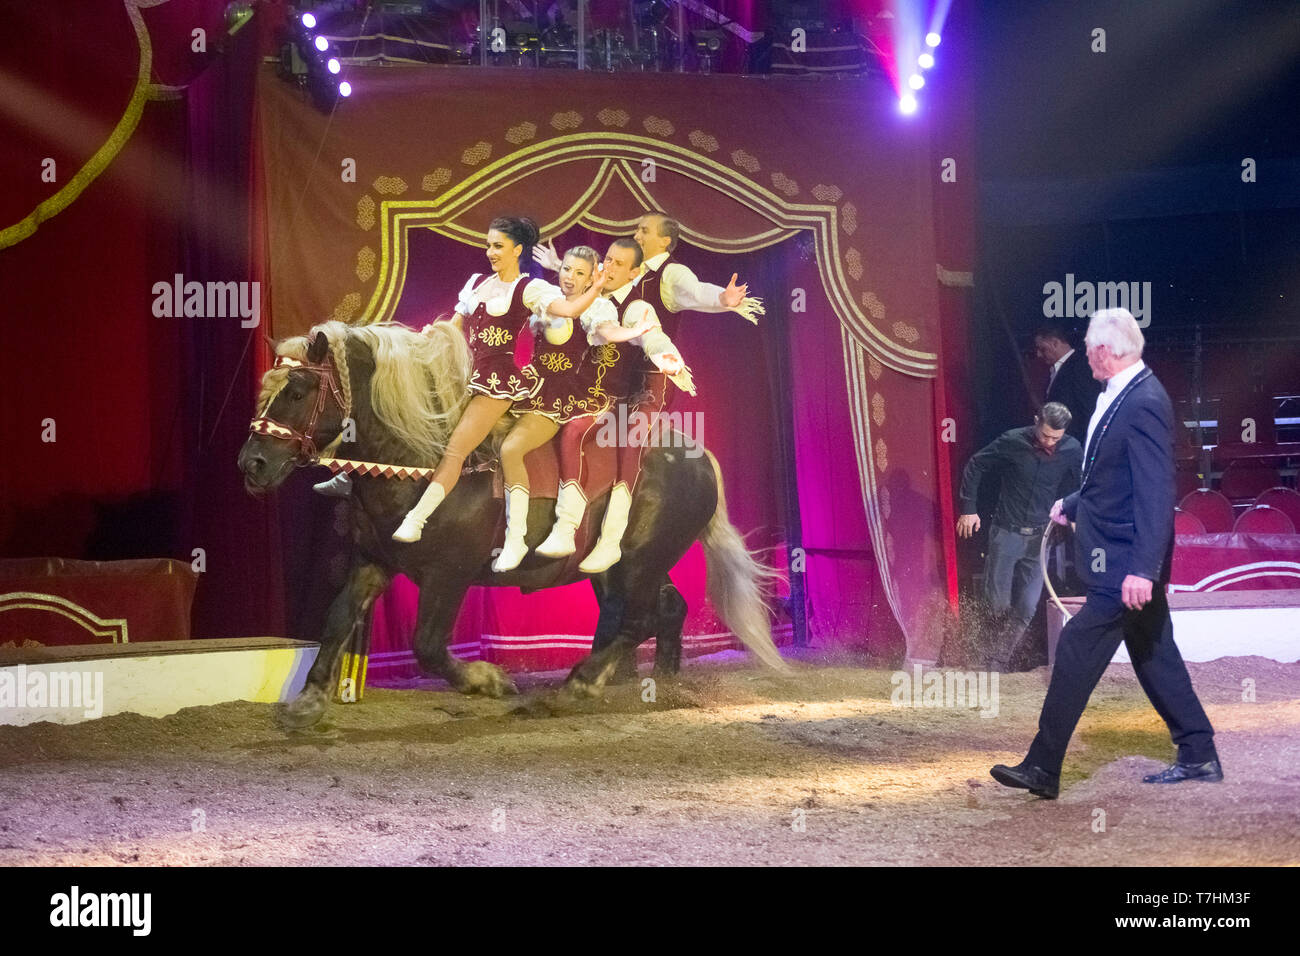 Performers on the back of a Russian Heavy Draft Horse during an show at the circus Louis Knie junior, Austria - Stock Image